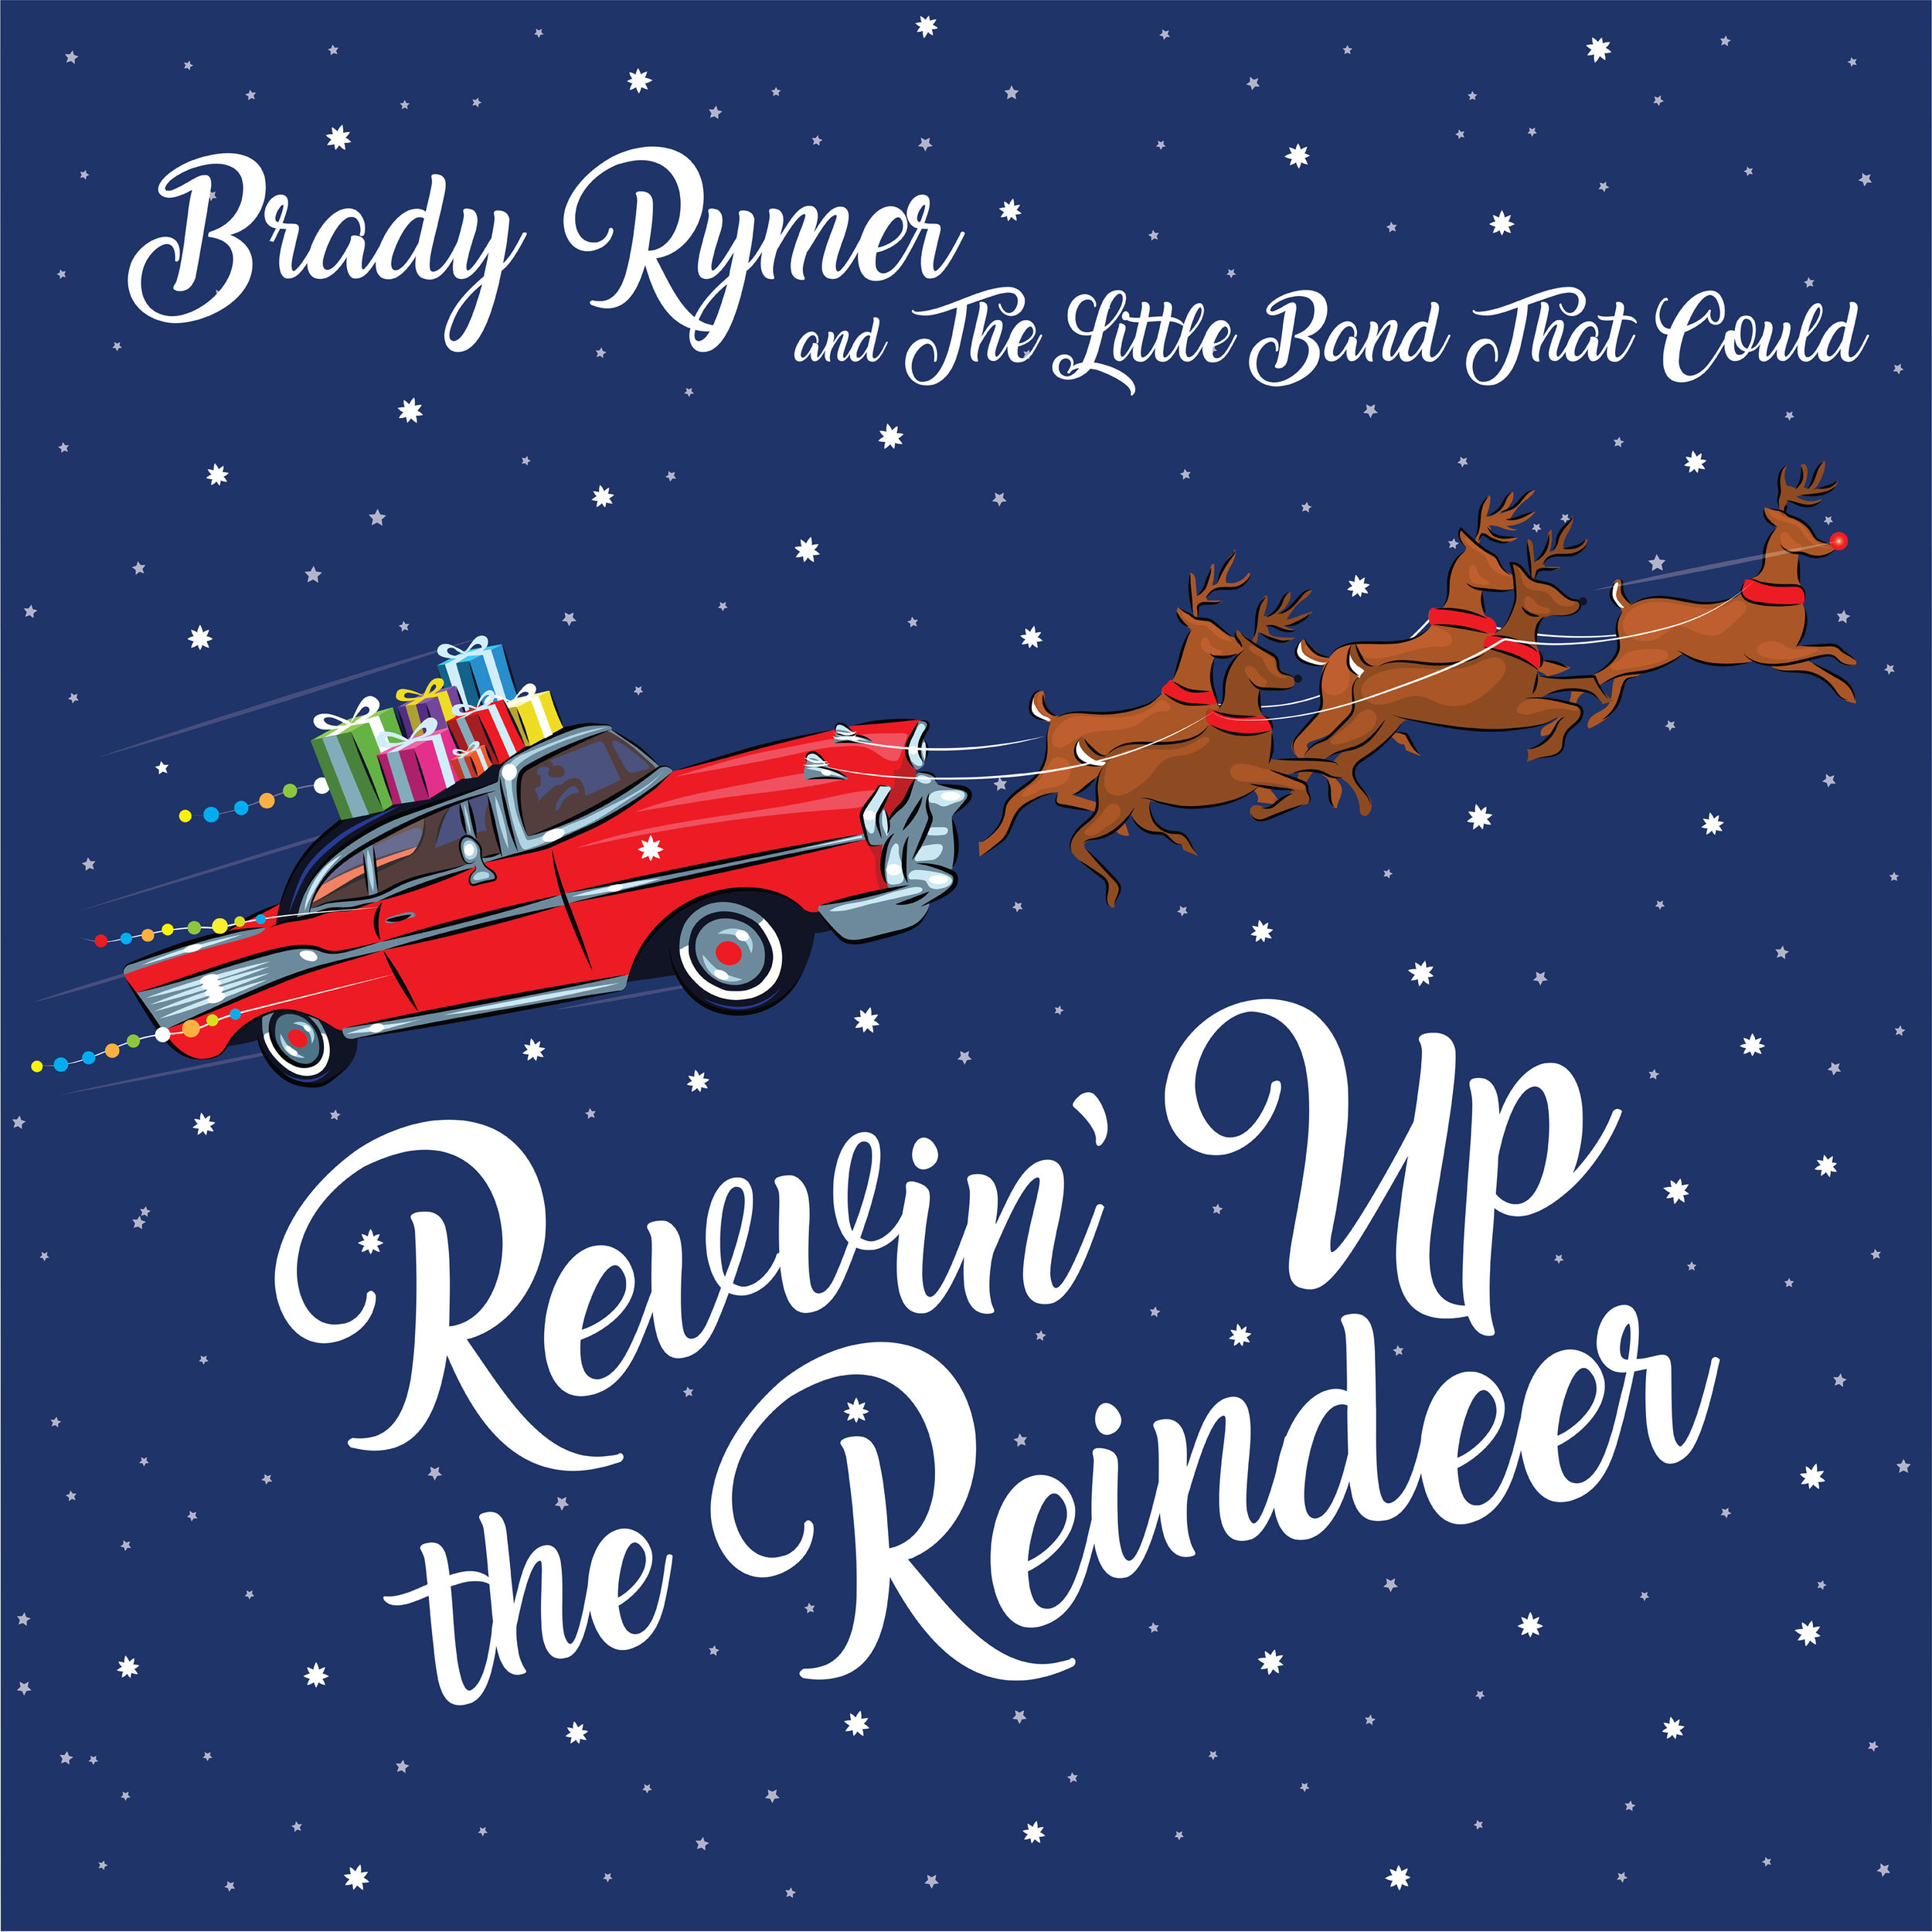 """IT'S THE ROWDY ROOTS-ROCK that we've come to know and love from Brady, sprinkled with a little tinsel and holly."""" ~ Kenny Curtis, SiriusXM Satellite Radio    THE BEST HOLIDAY ALBUM I'VE EVER HEARD! It pushed all of the holiday idioms aside -- it's fresh and it's hot.   ~ Paul Butler, Kids Crossroads Radio     A FEEL-GOOD, ADDICTIVE AND MELODIC TREAT,     this fun collection of upbeat Christmas songs is one for the entire family to enjoy. ~ iTunes reviewer     Whether you celebrate Christmas, Chanukah, or Kwanzaa, Rymer has you covered in this ECLECTIC, INCLUSIVE, MODERN HOLIDAY ROMP. ~  Cherry Blossoms the Blog     Brady Rymer's new holiday tunes release gives the most wonderful time of the year a brand new glow from the North Star, right into your living room with a set of rock and roll music, that while all about the holiday flair, is A FUN LISTEN MOST ANYTIME OF THE YEAR. ~  Family Music n' Arts"""